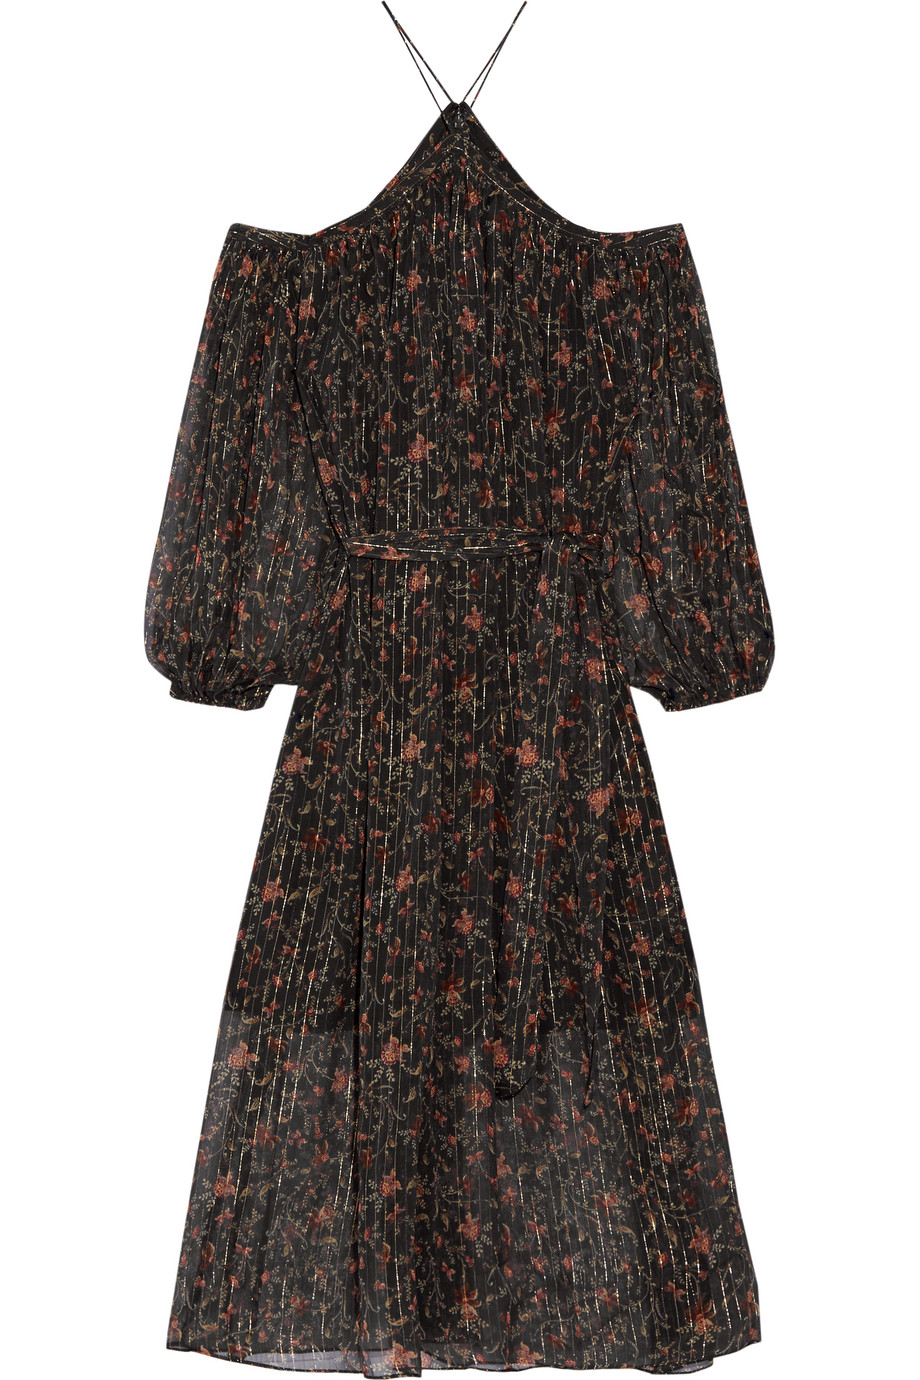 Zimmermann Havoc Off-the-Shoulder Printed Silk-Georgette Dress, Black, Women's - Printed, Size: 0